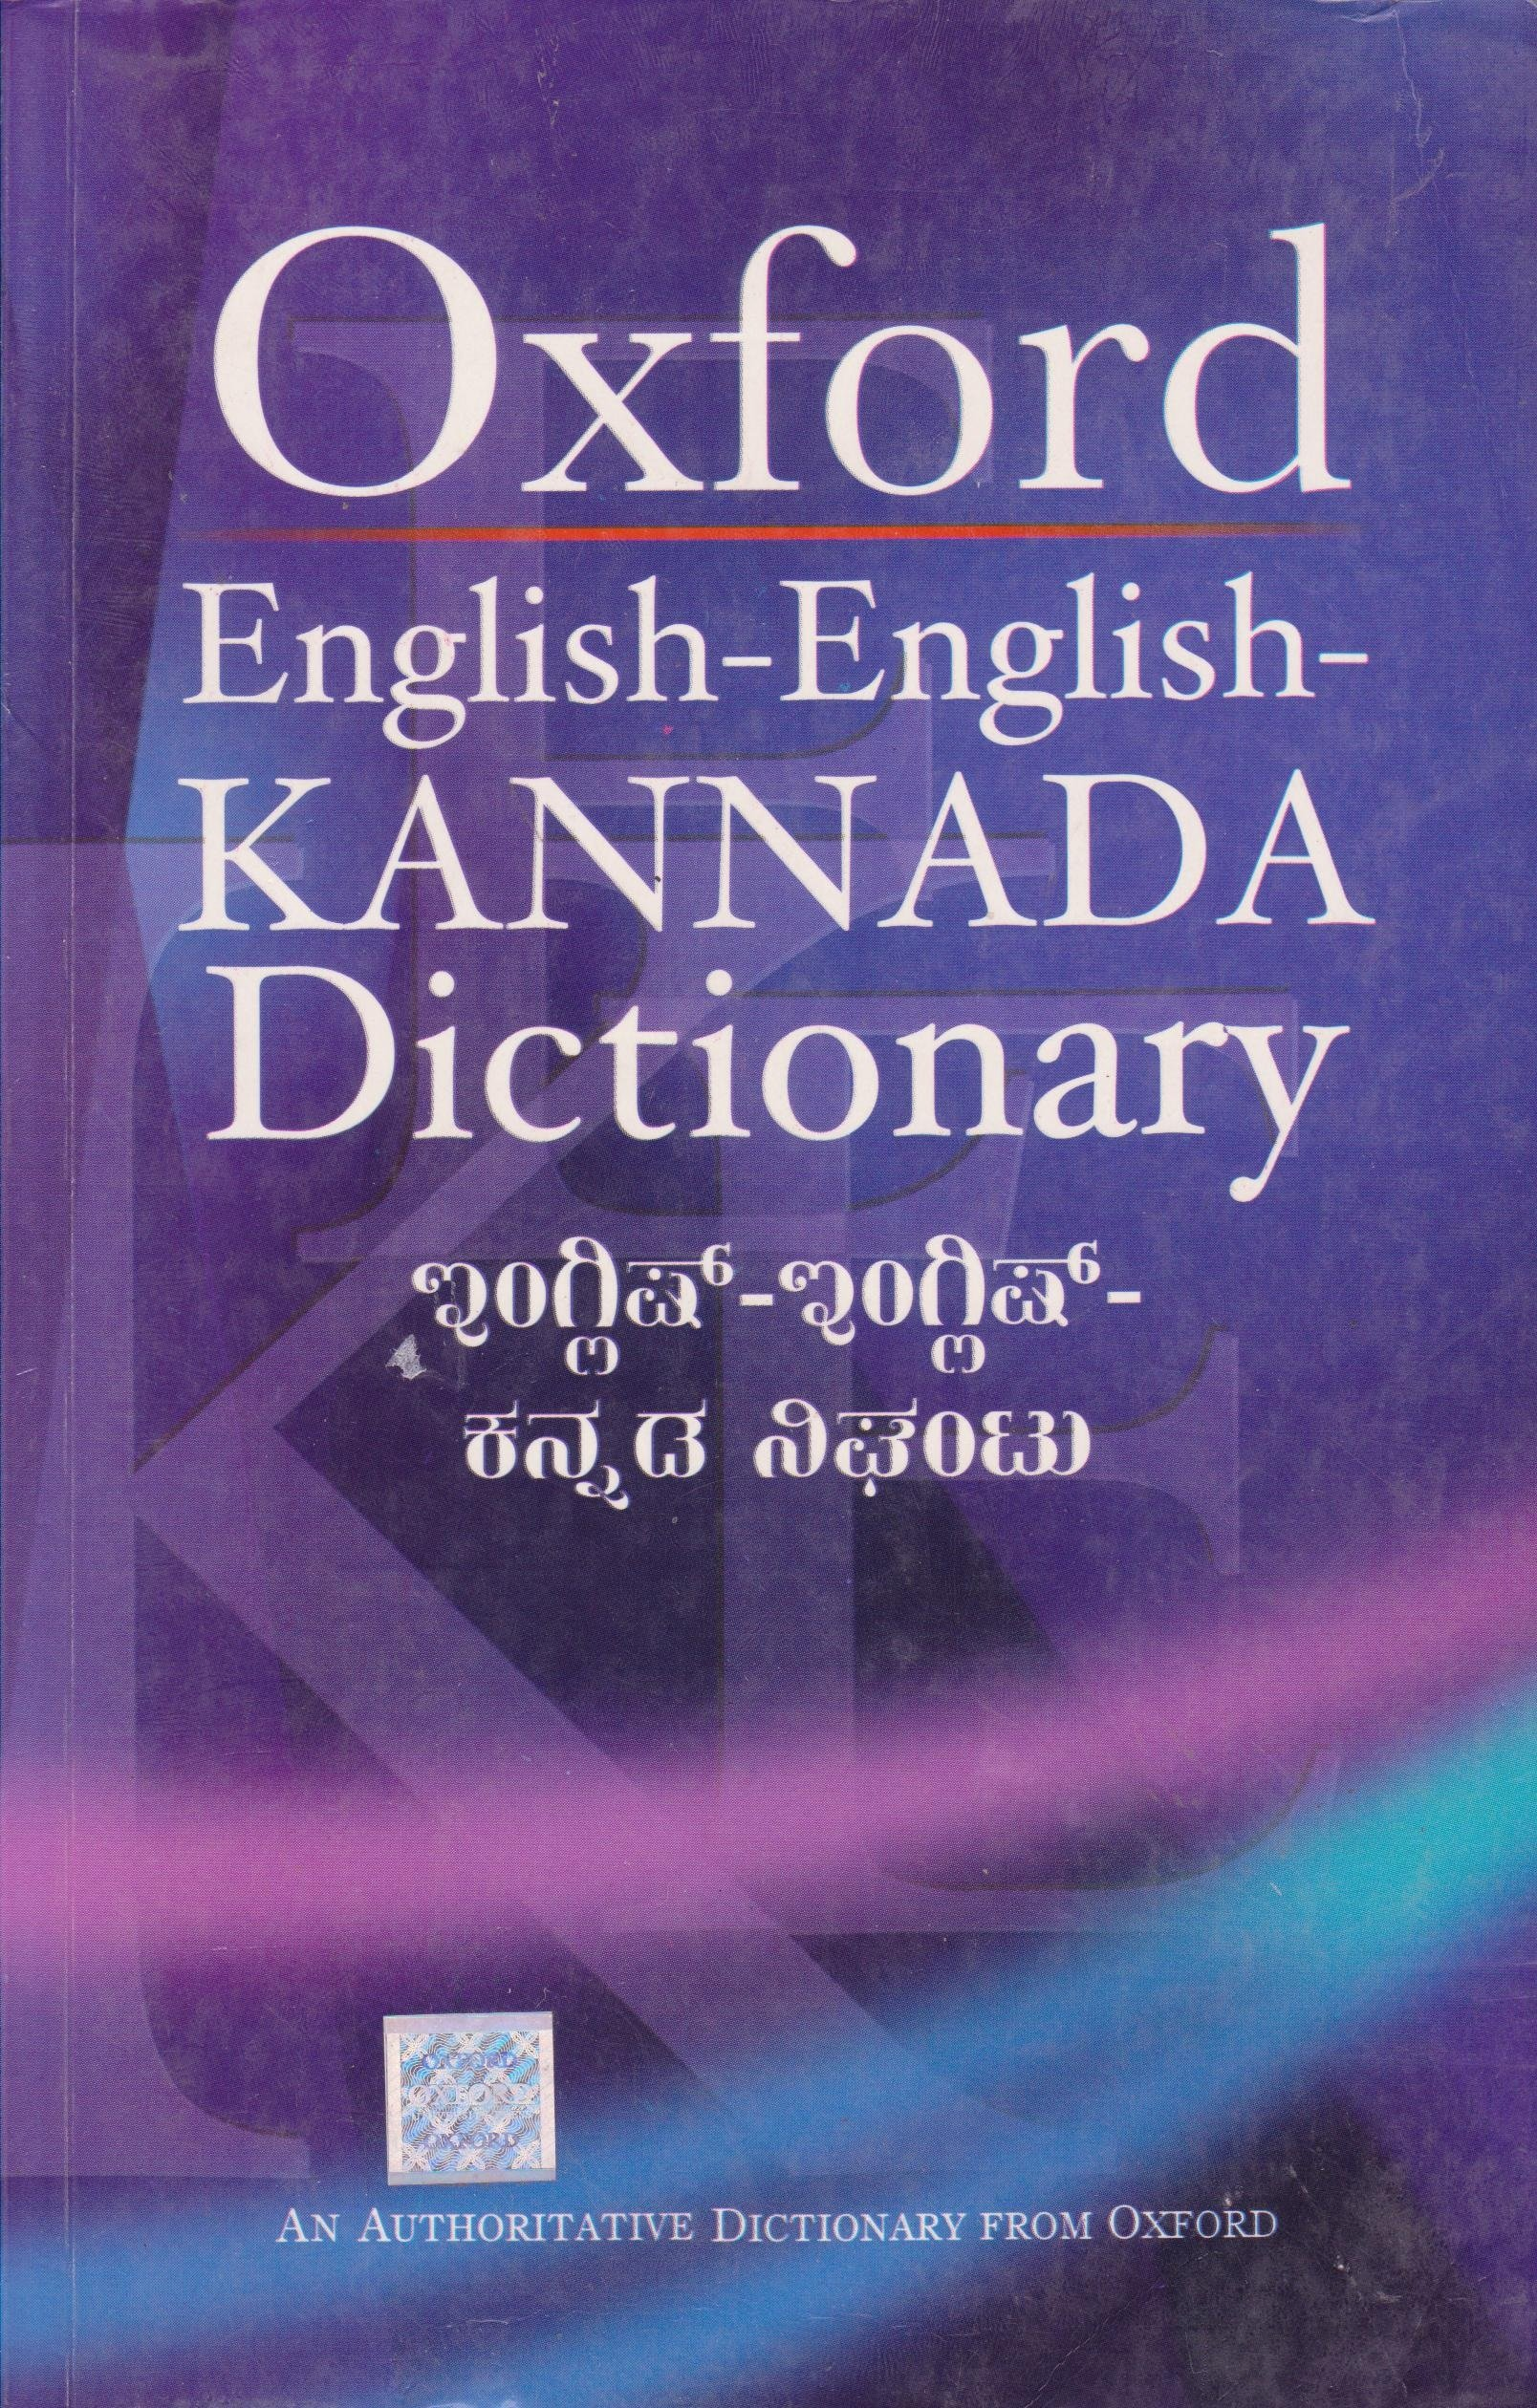 Buy English-English-Kannada Dictionary Book Online at Low